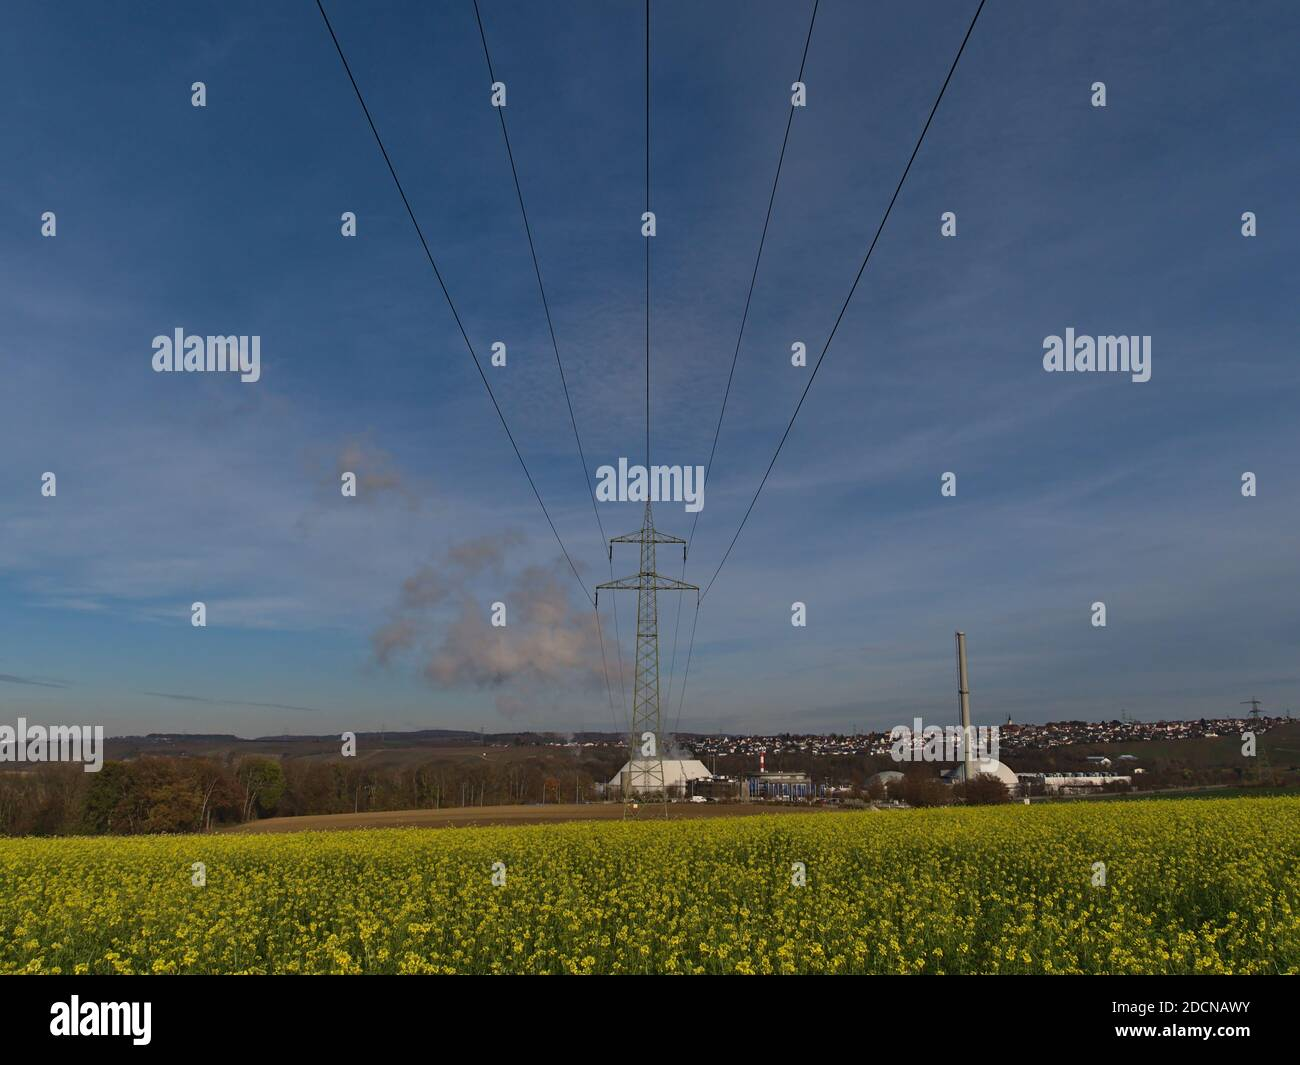 Bottom view of a power line with pylon connecting to nuclear power plant in Neckarwestheim, Germany with yellow blooming rapeseed flowers below. Stock Photo